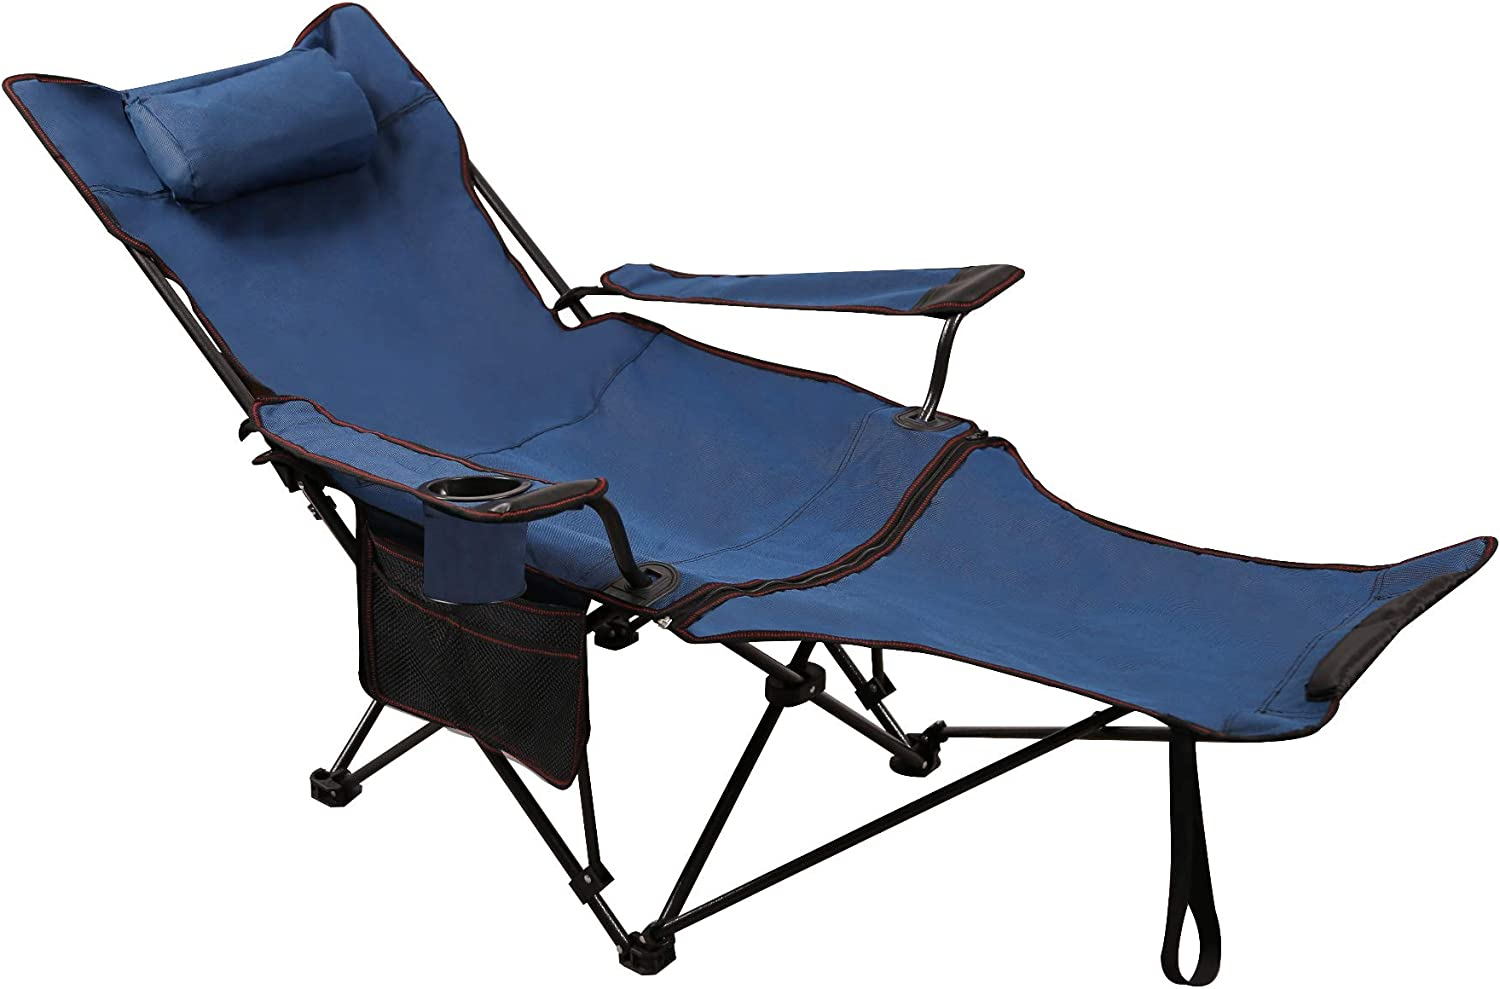 Details about  /TOP RANGE RECLINING camping CHAIR FOOT REST BRUNNER REBEL PRO small med large